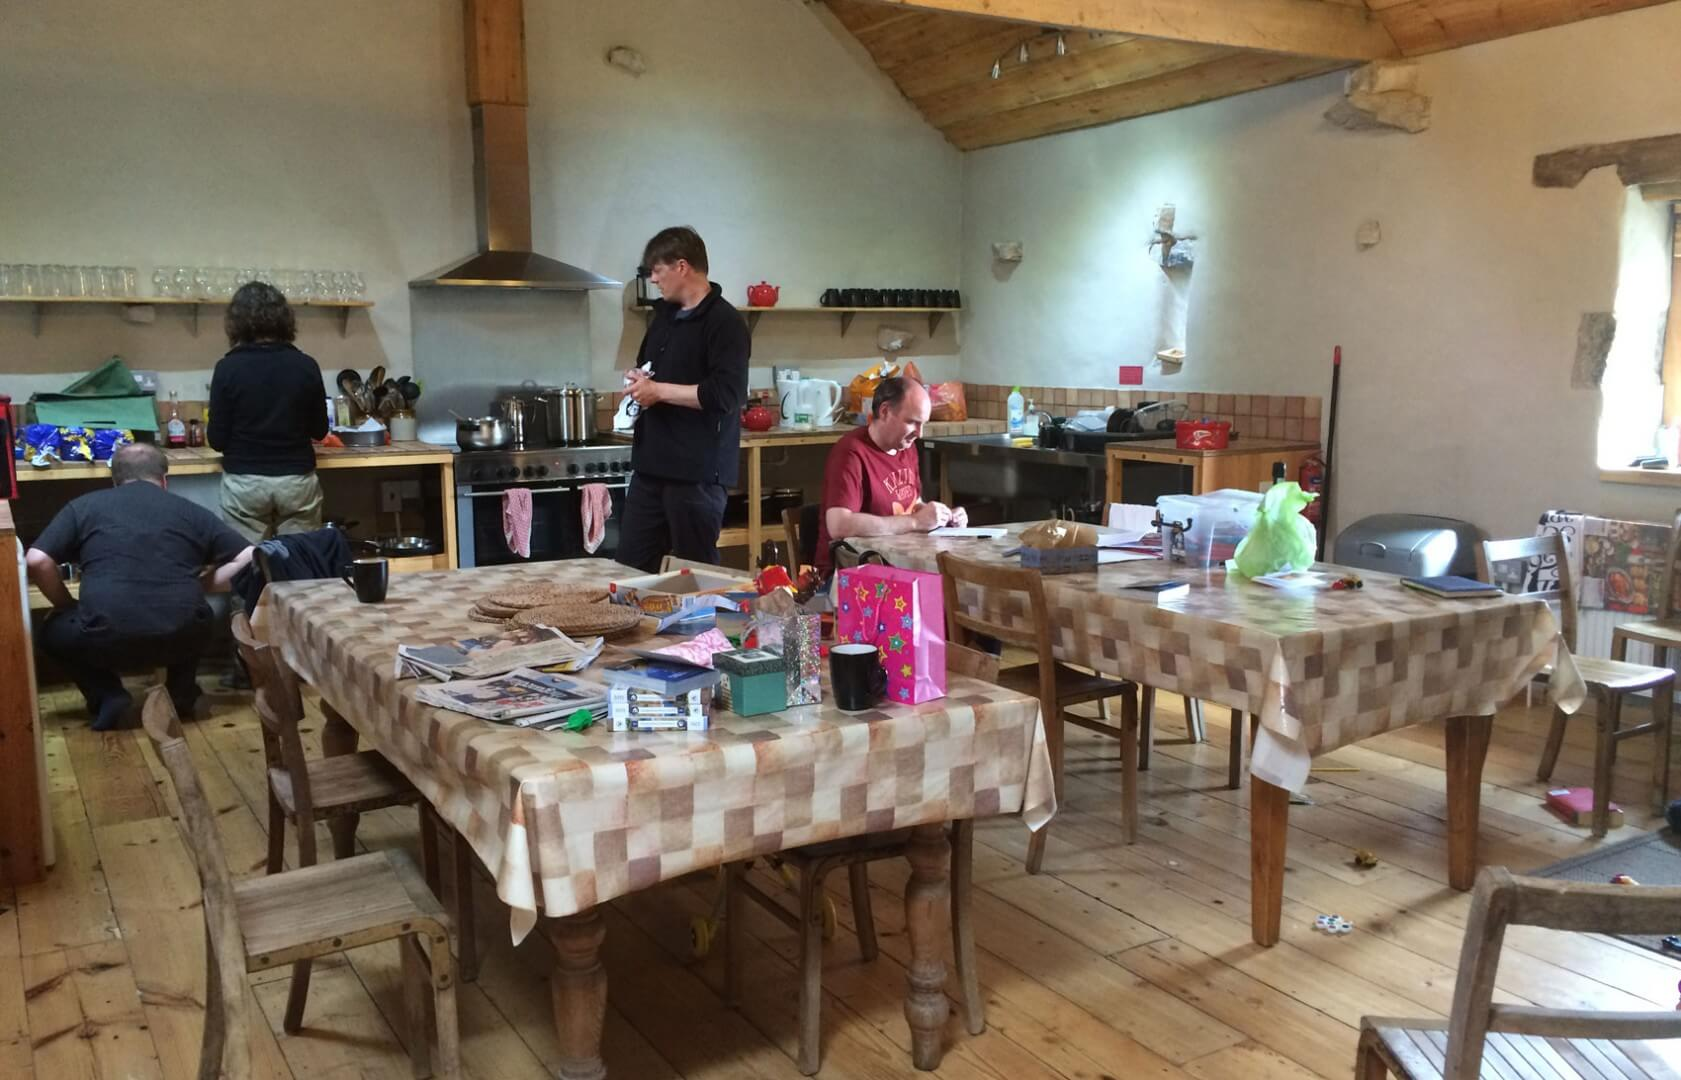 Bunkhouse in the Peak District